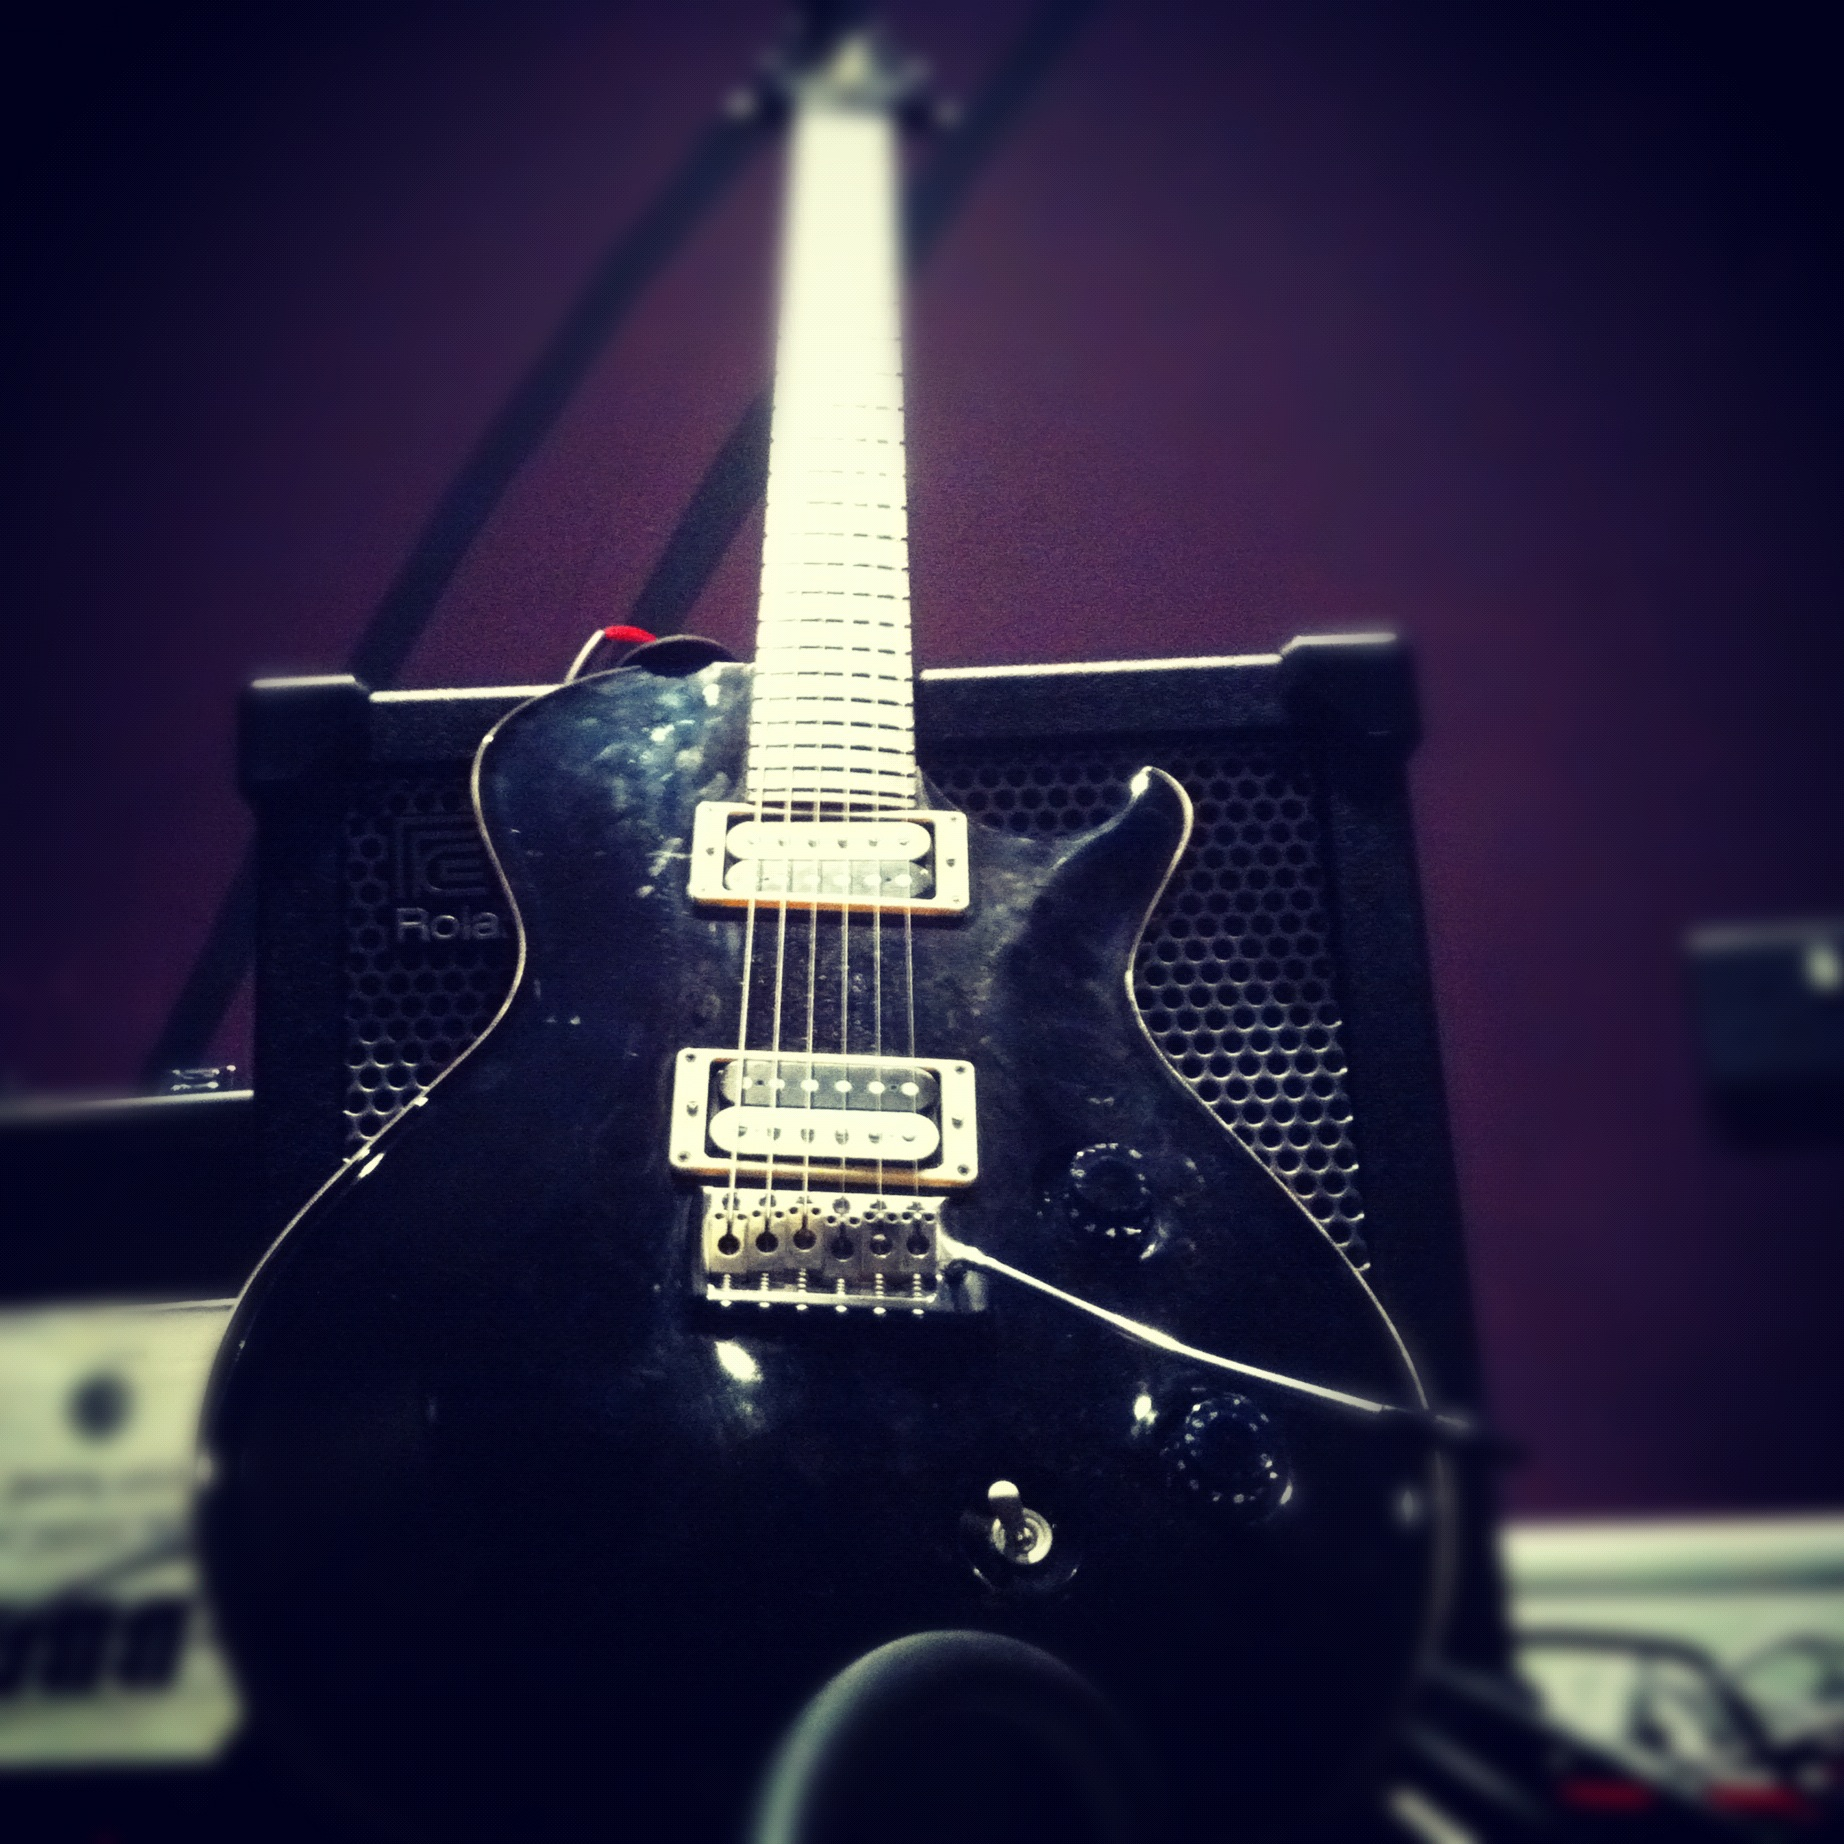 Electric guitar part diagram tailored high quality electric electric guitar parts diagram electric guitar lesson in london kilburn kensington central pooptronica Choice Image